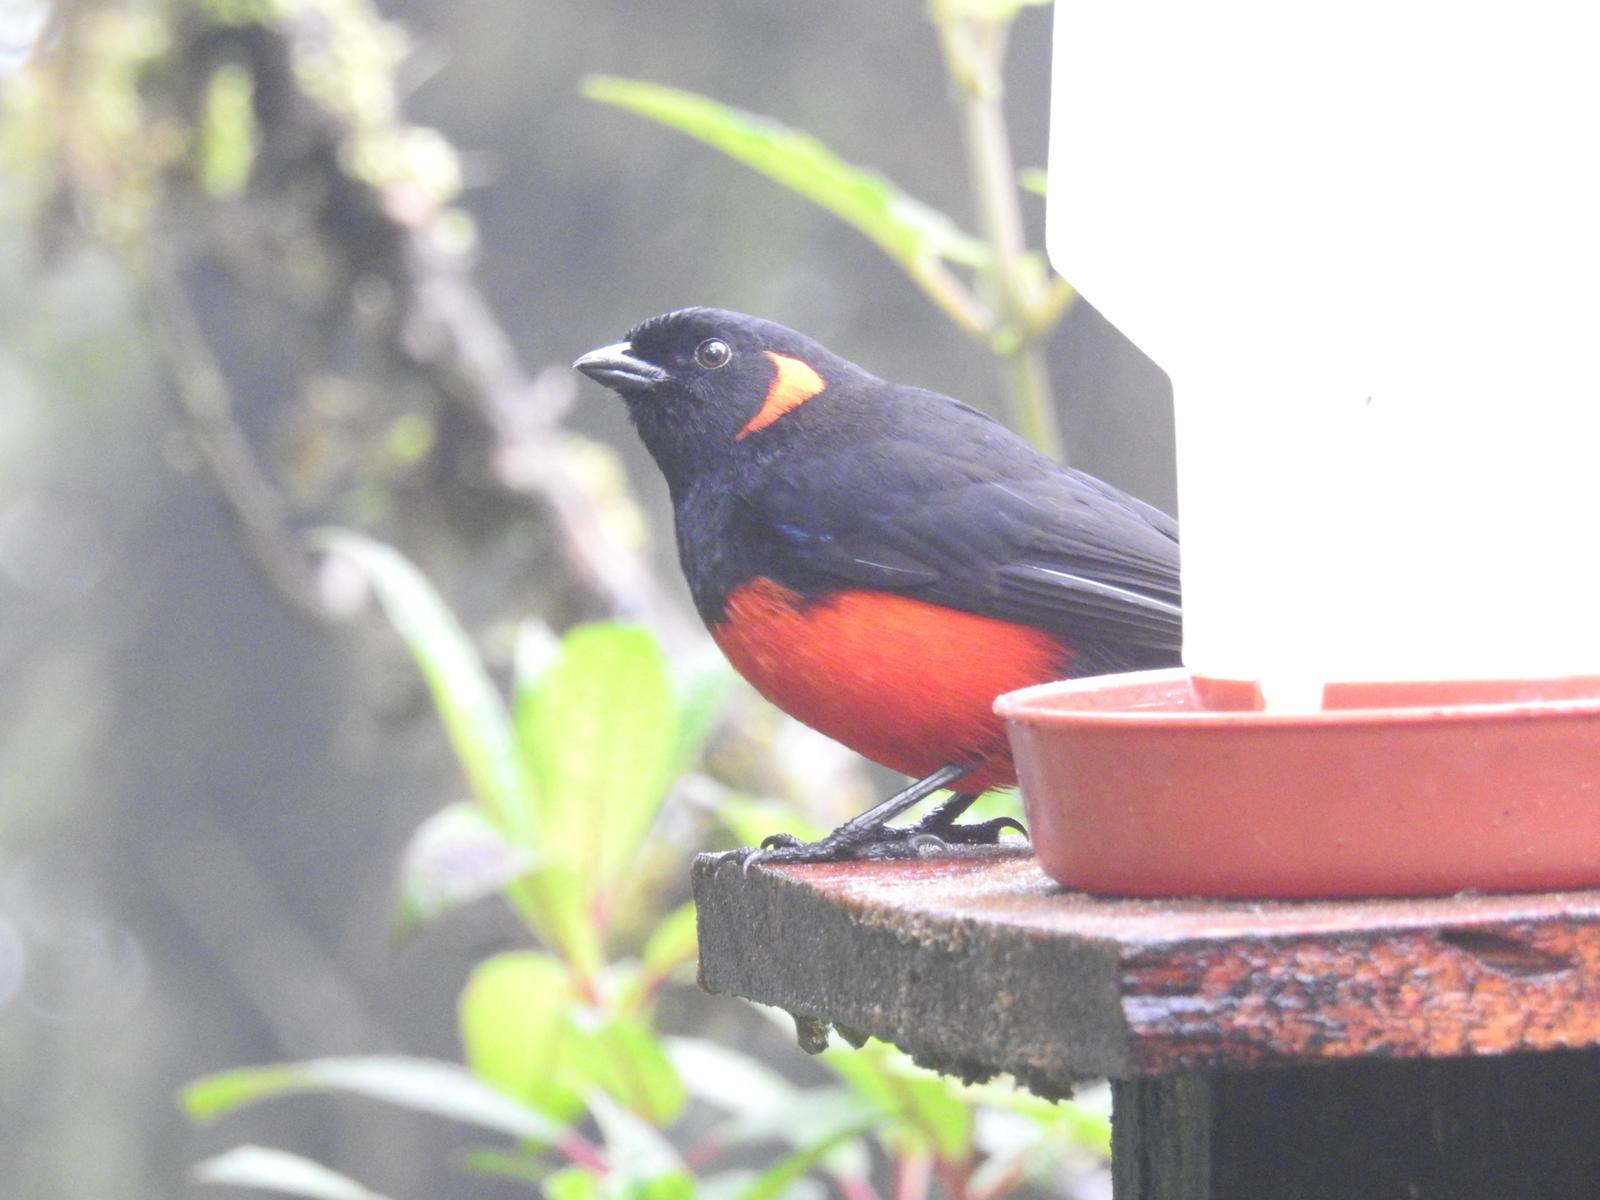 Scarlet-bellied Mountain-Tanager (Scarlet-bellied) Photo by John Licharson